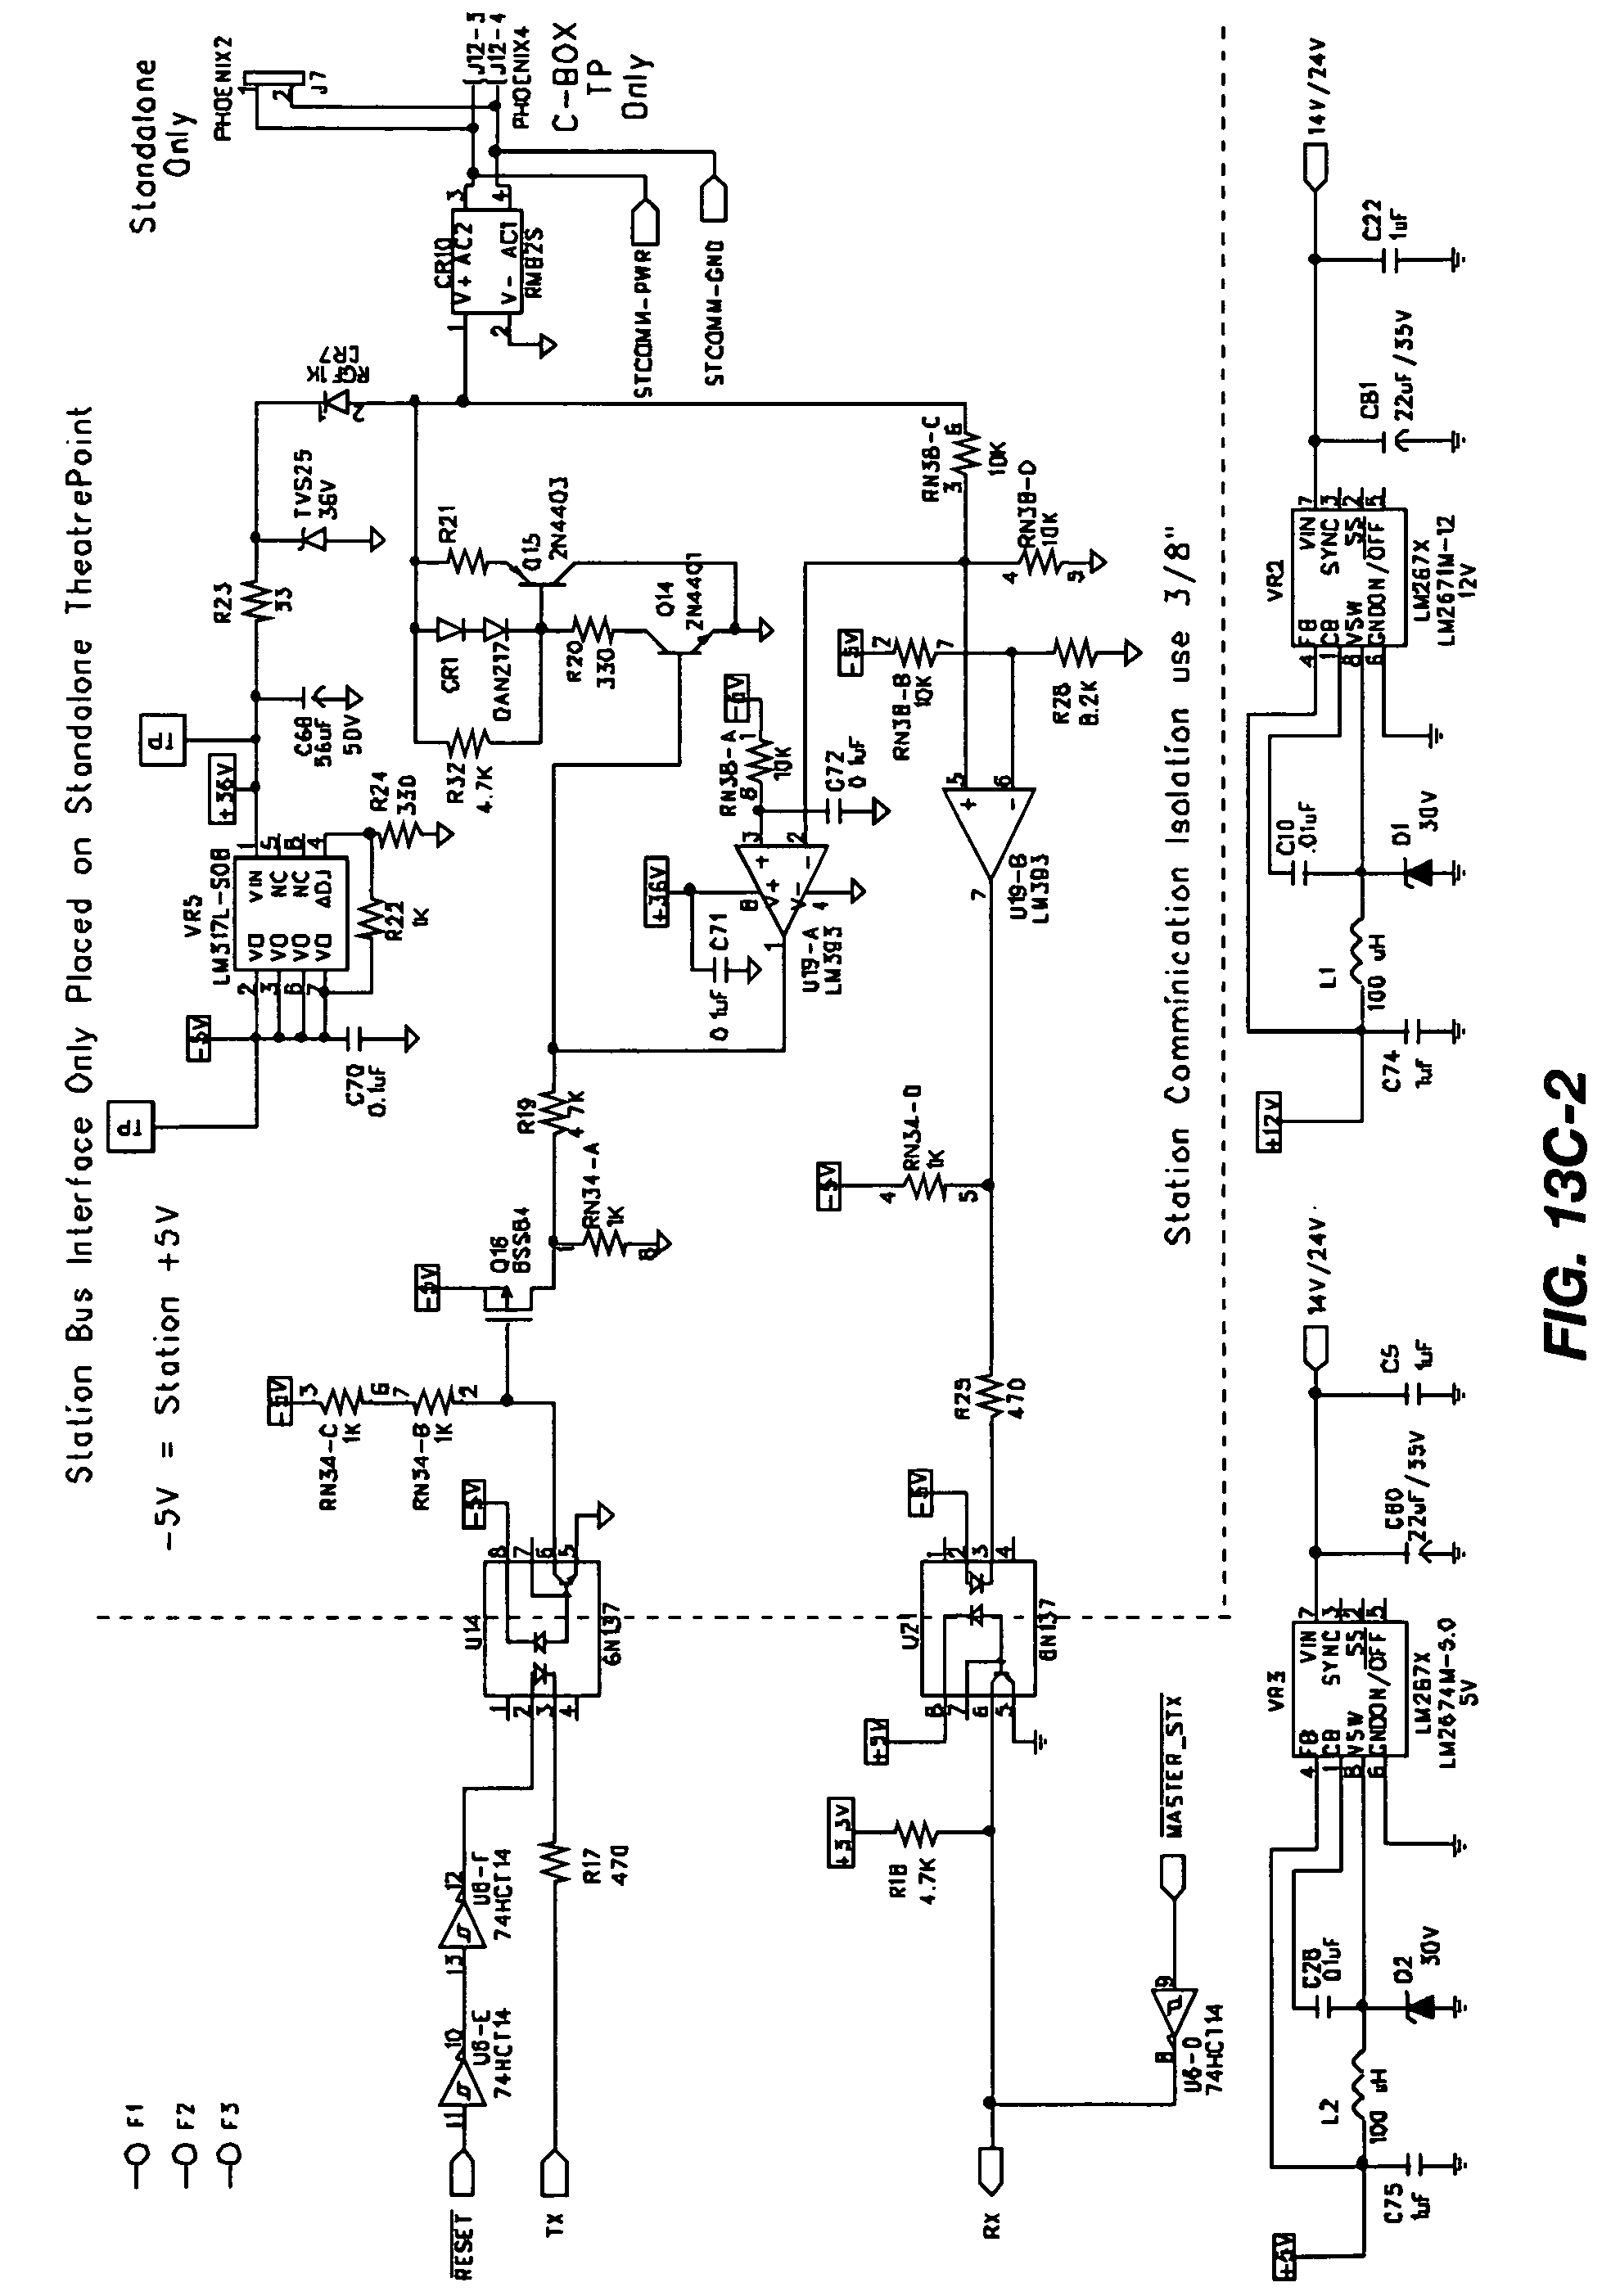 Home Theater Wiring Schematic - Catalogue of Schemas on